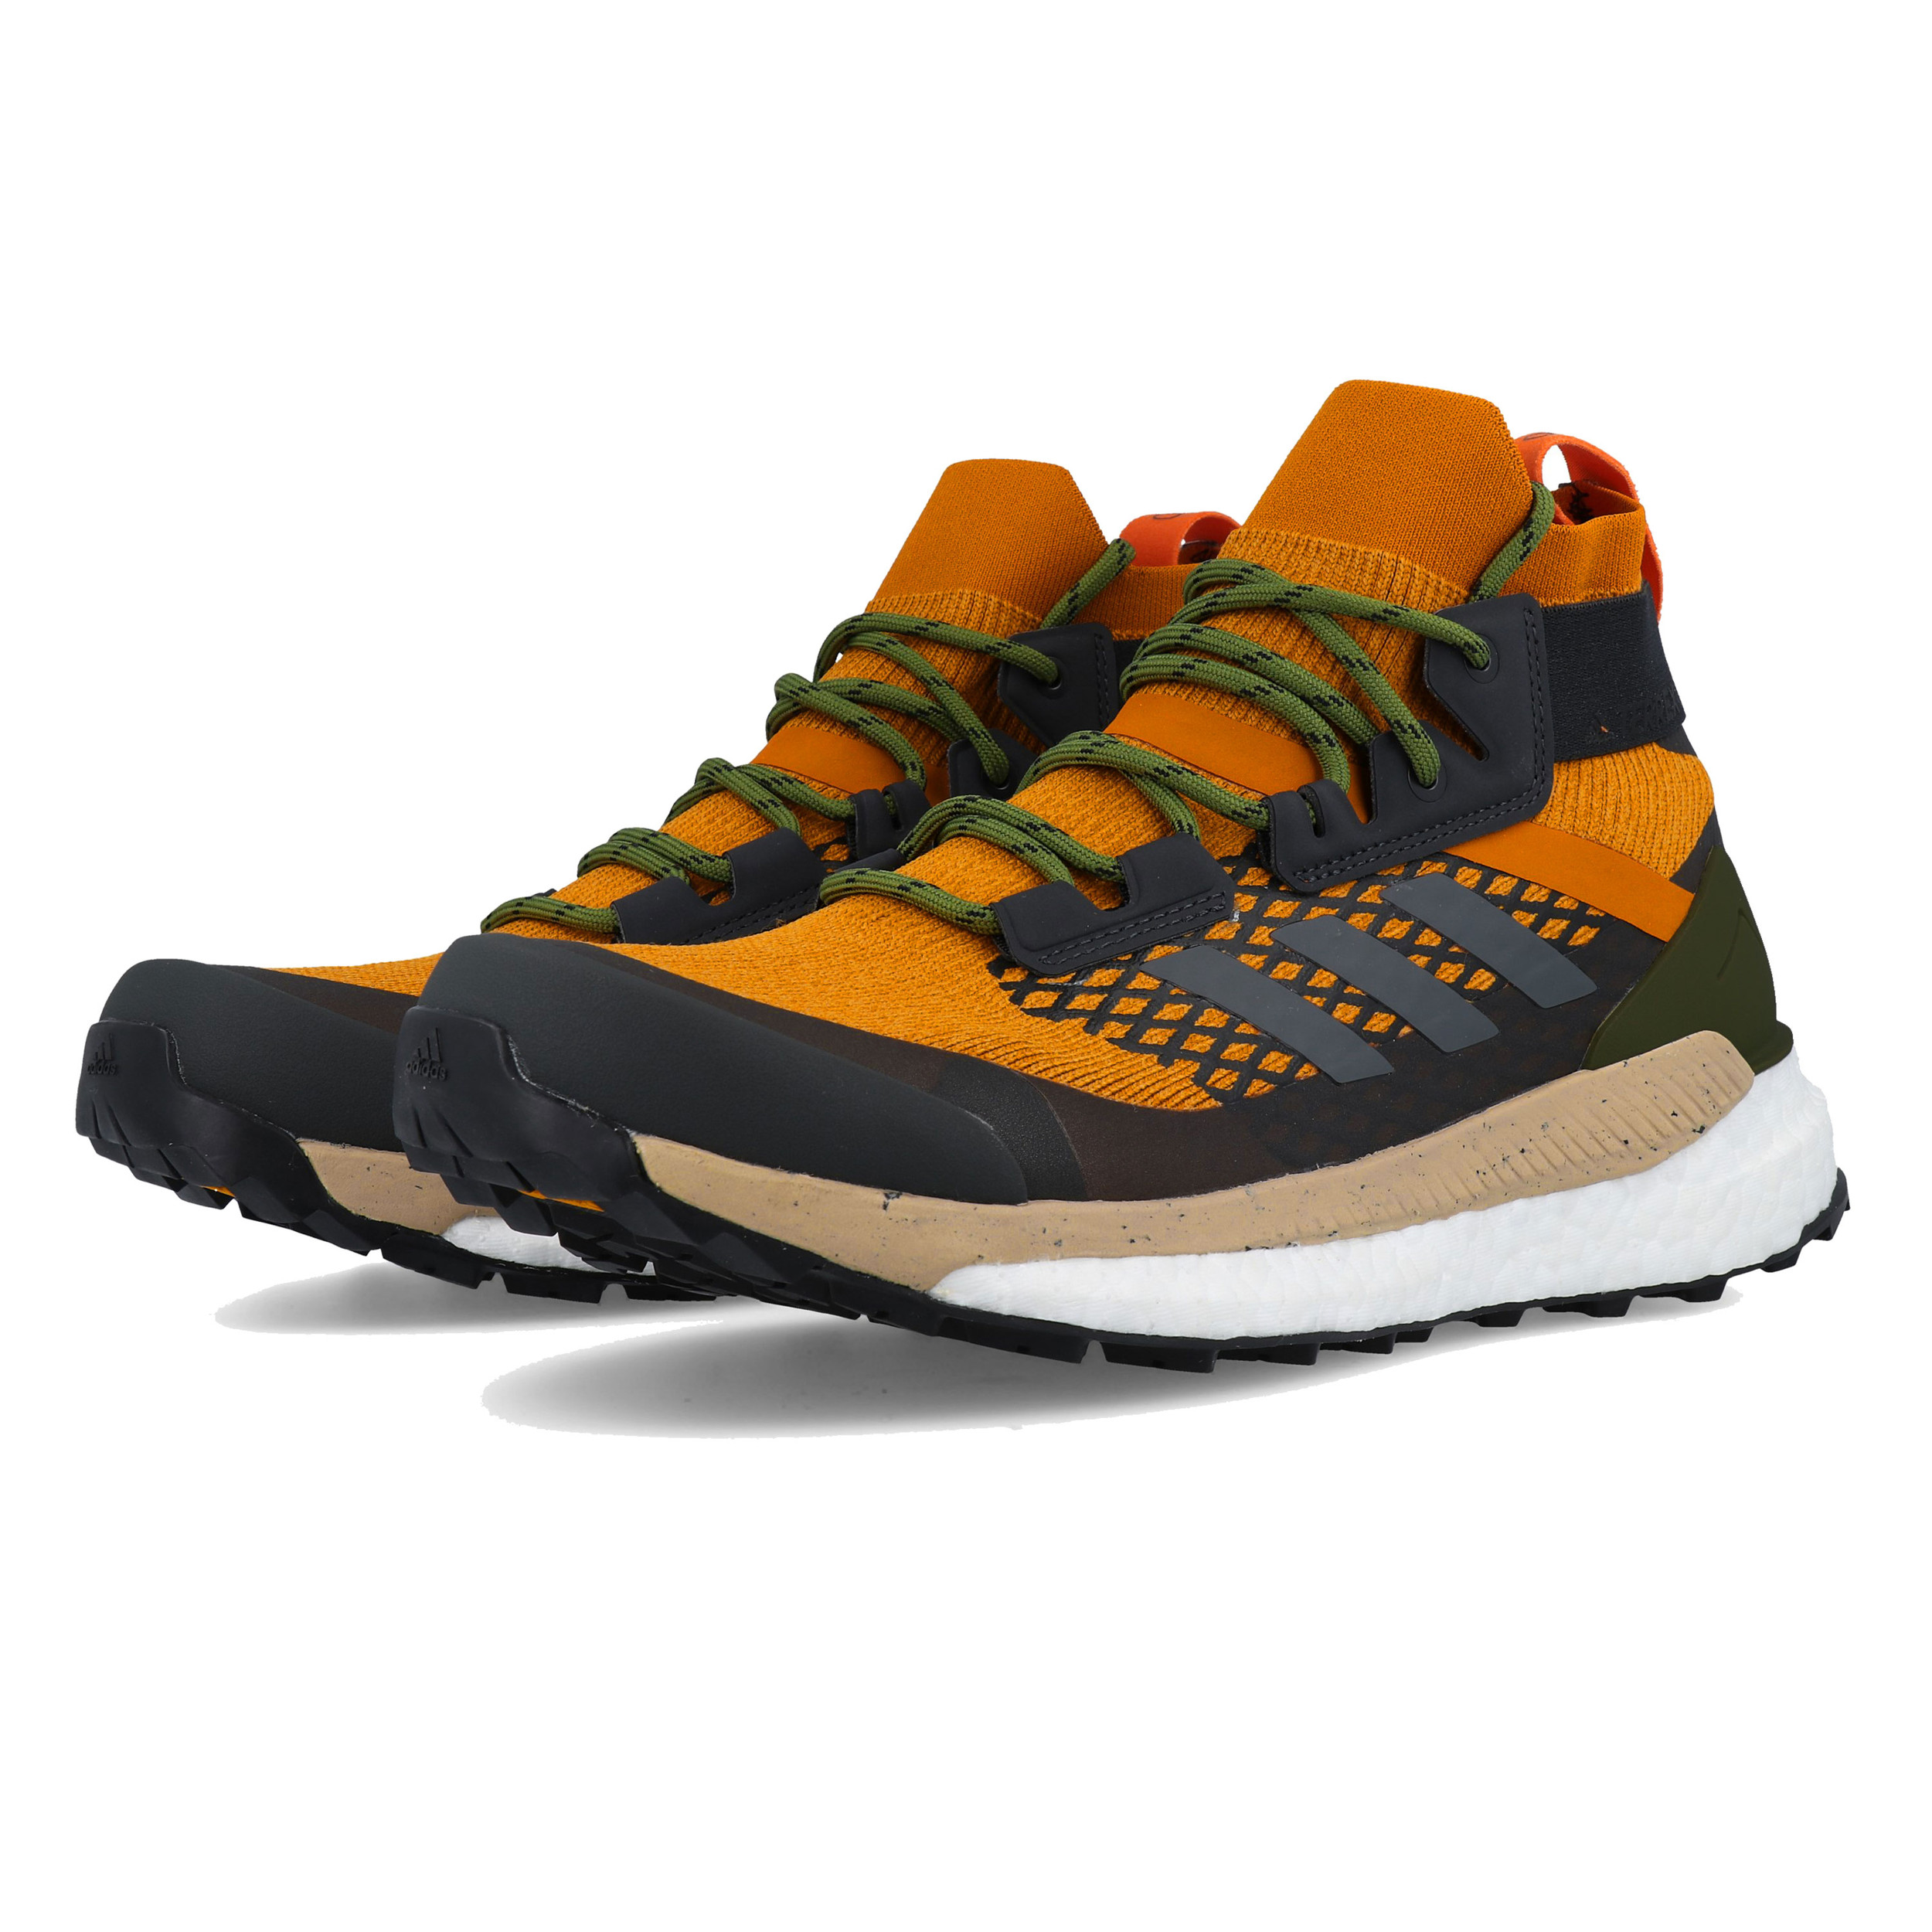 b25a9fc147 Details about adidas Mens Terrex Free Hiker Walking Shoes Black Orange  Sports Outdoors Water